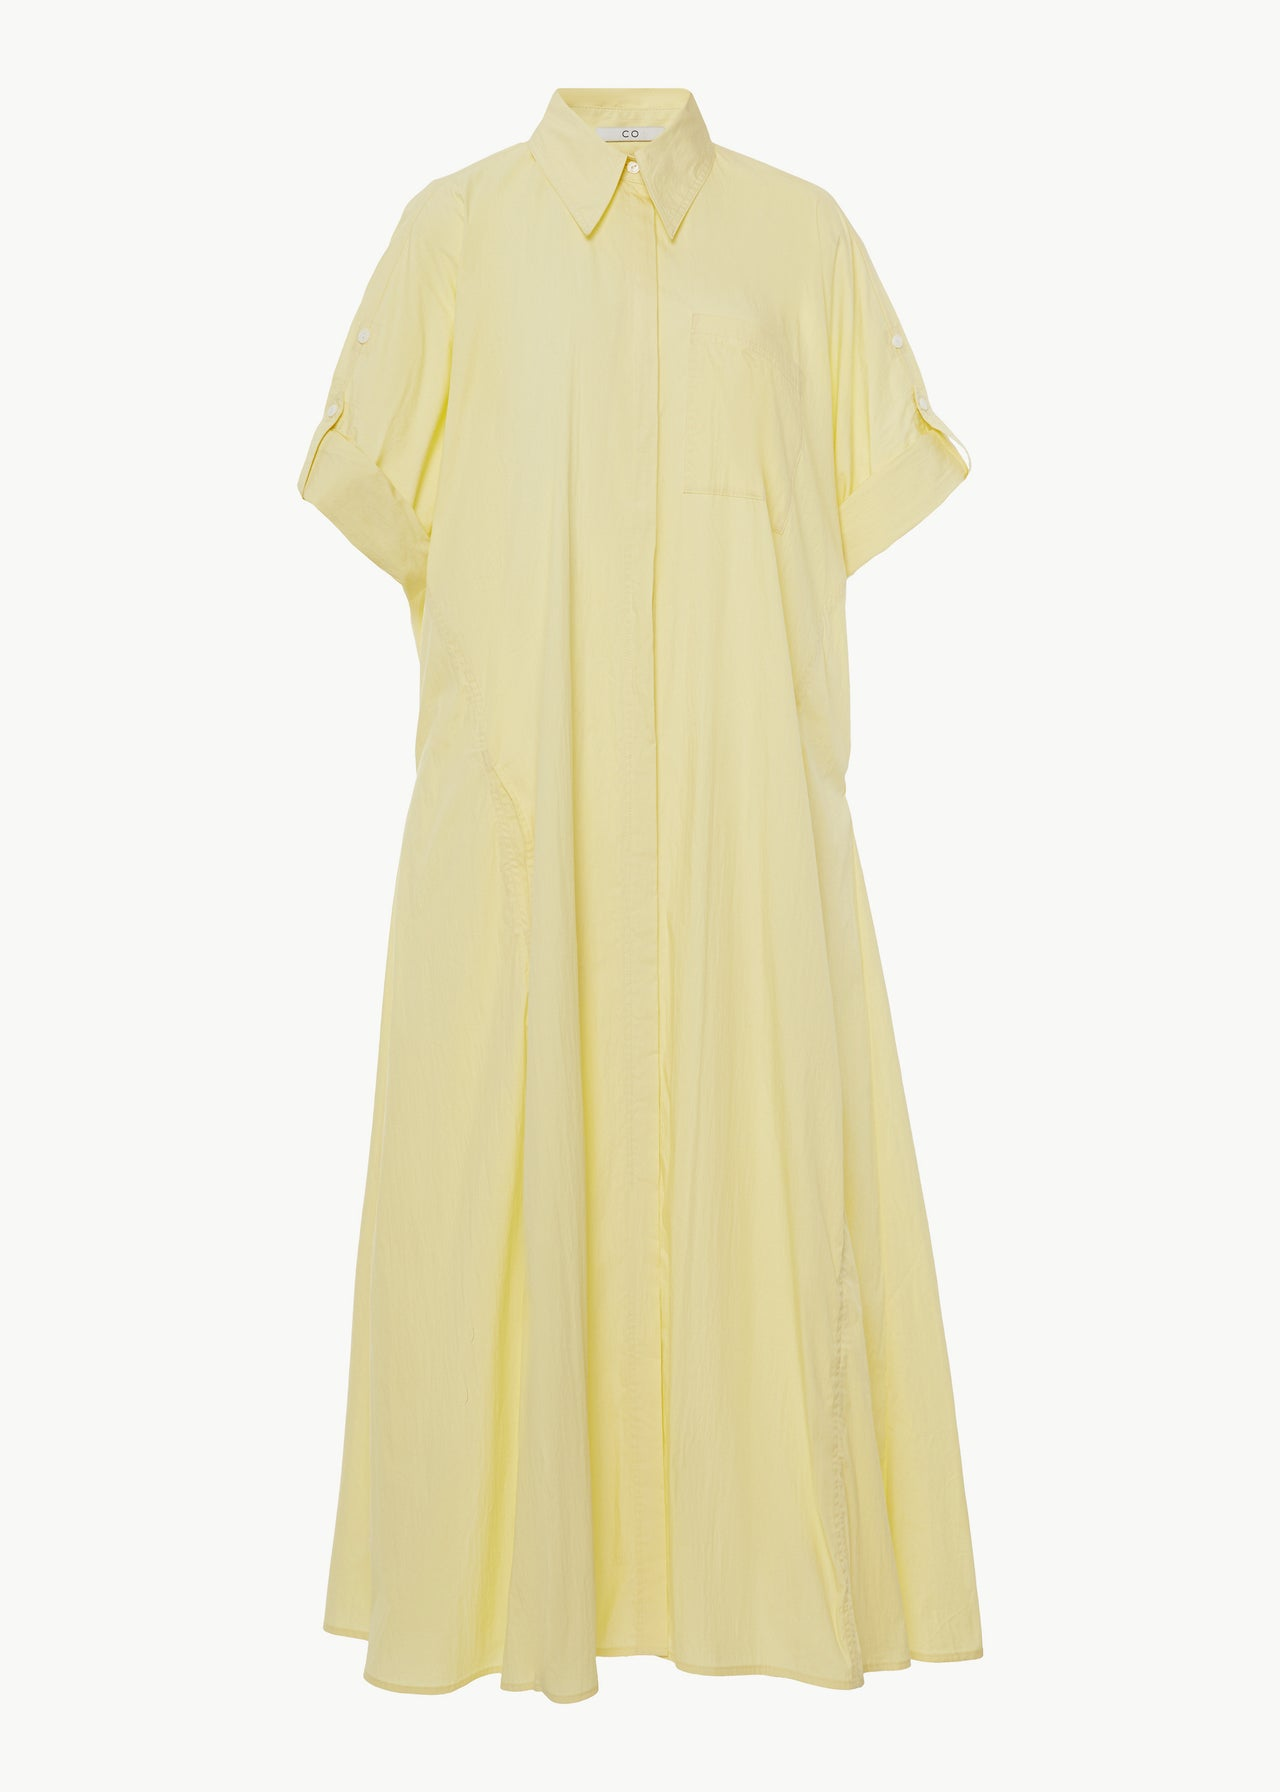 Rolled Sleeve Shirtdress in Cotton Nylon - Yellow